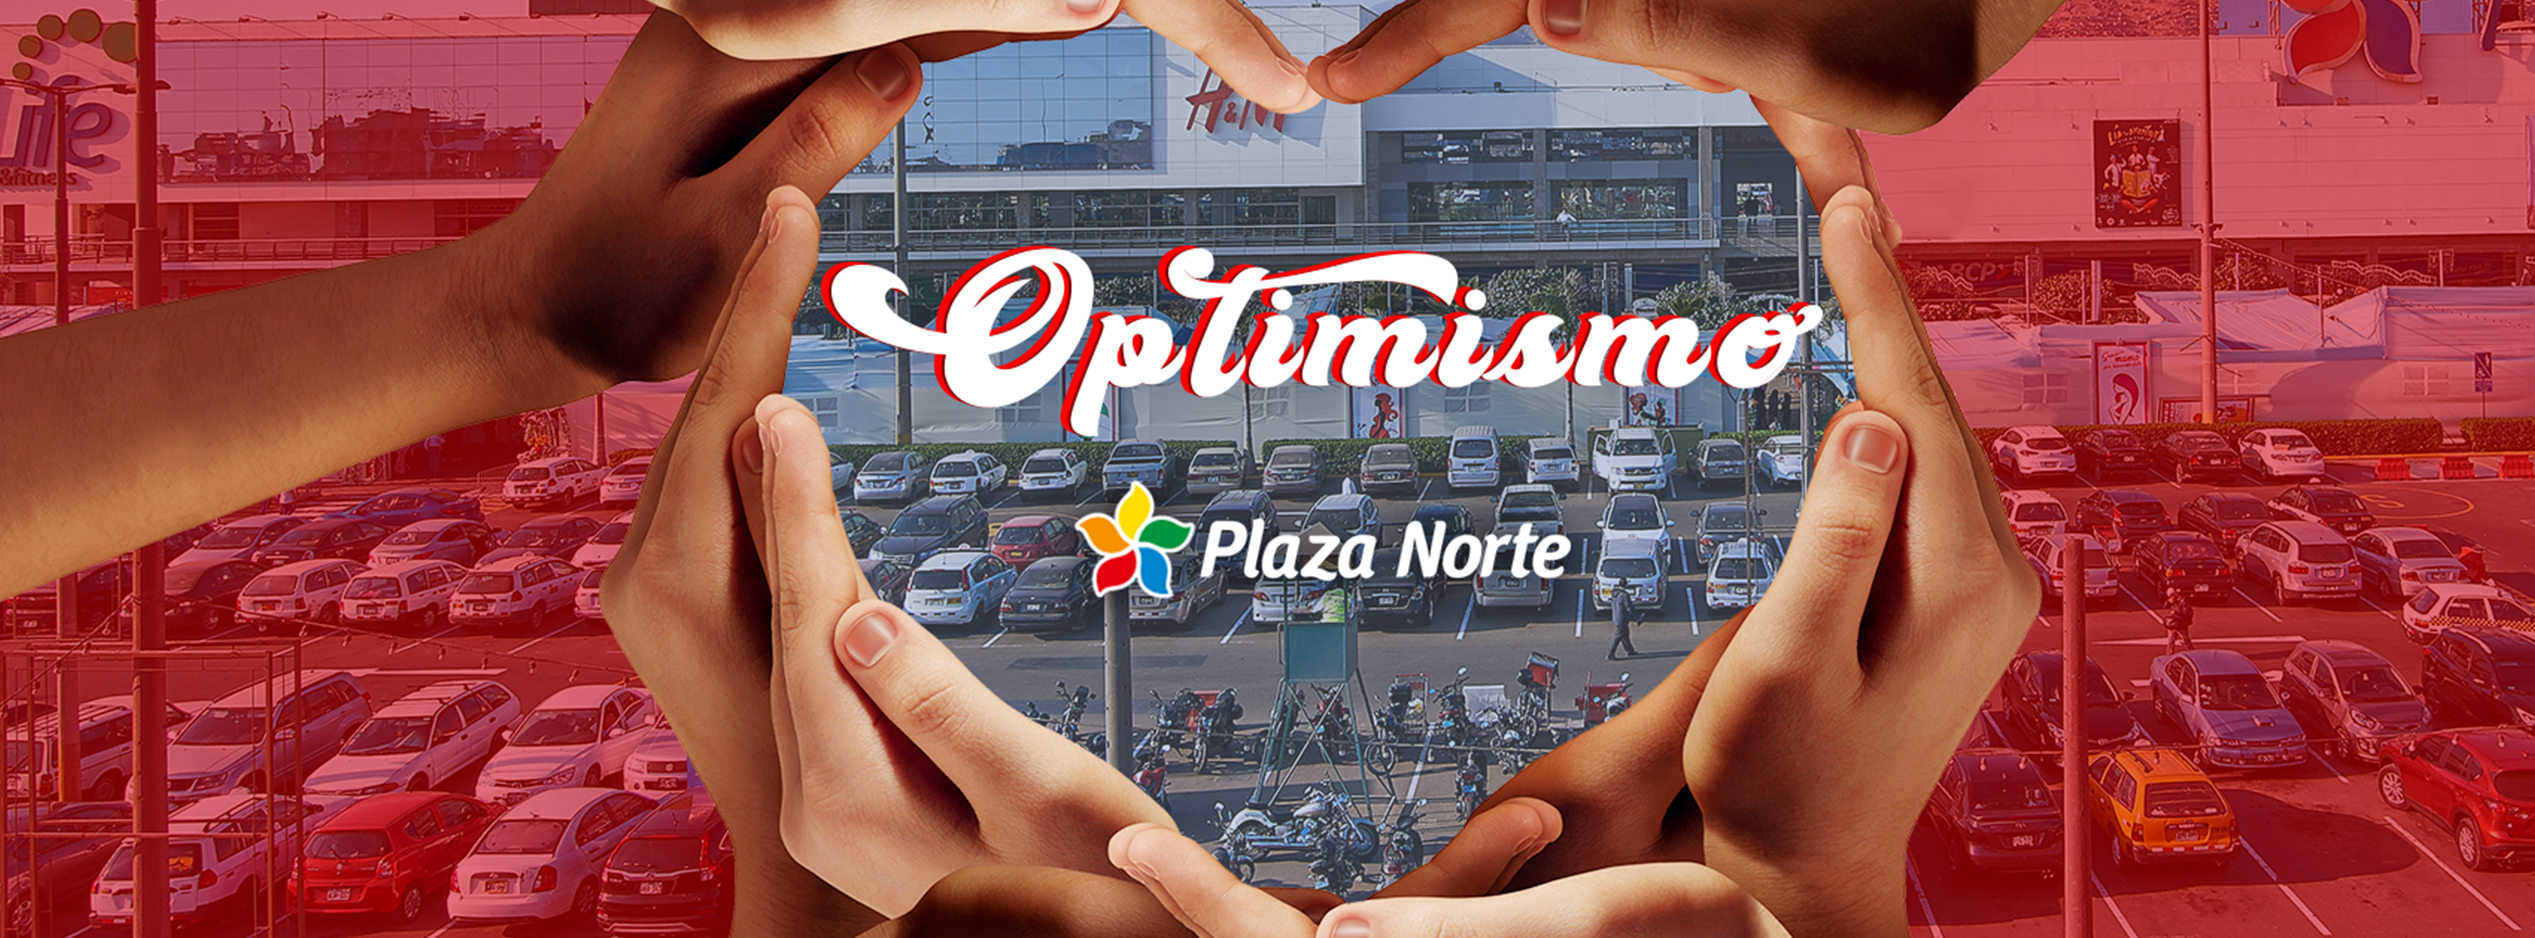 BANNER HOME - OPTIMISMO  - Plaza Norte